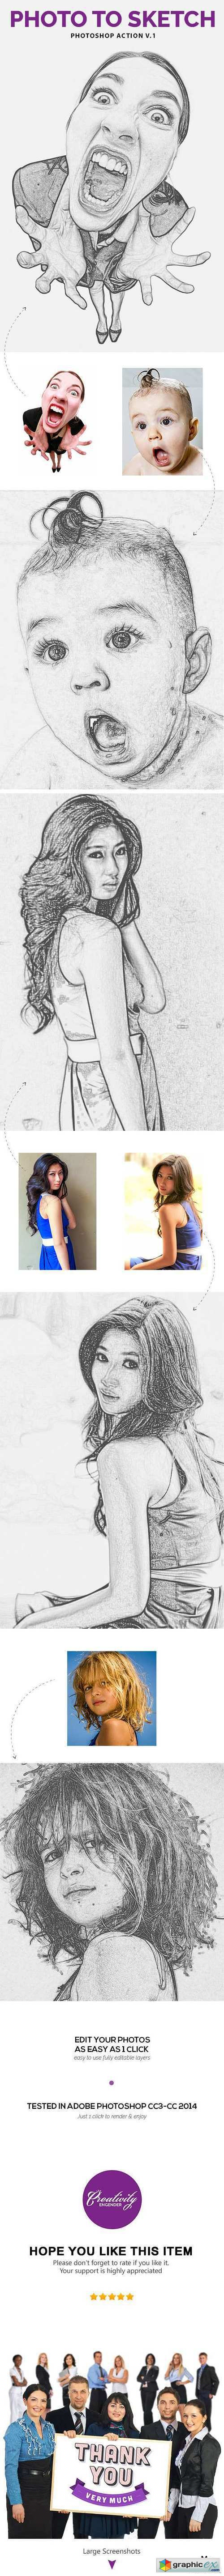 Photo to Sketch V.1 - Photoshop Action